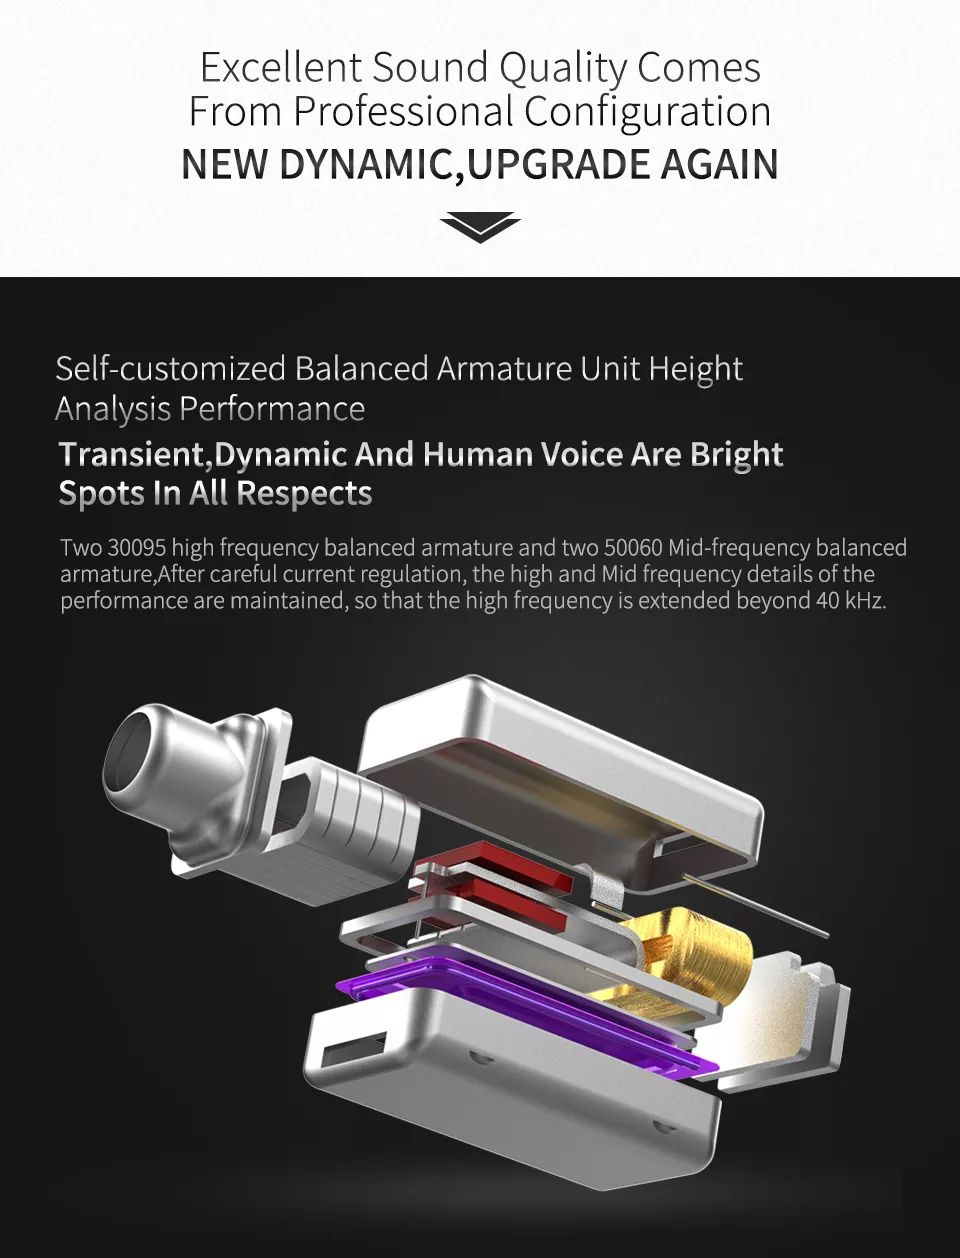 Kz Zs10 Pro 4 Balanced Armature Dynamic Drivers Hybrid Earphone Heavy Bass 3 5mm Wired Earbuds (1)